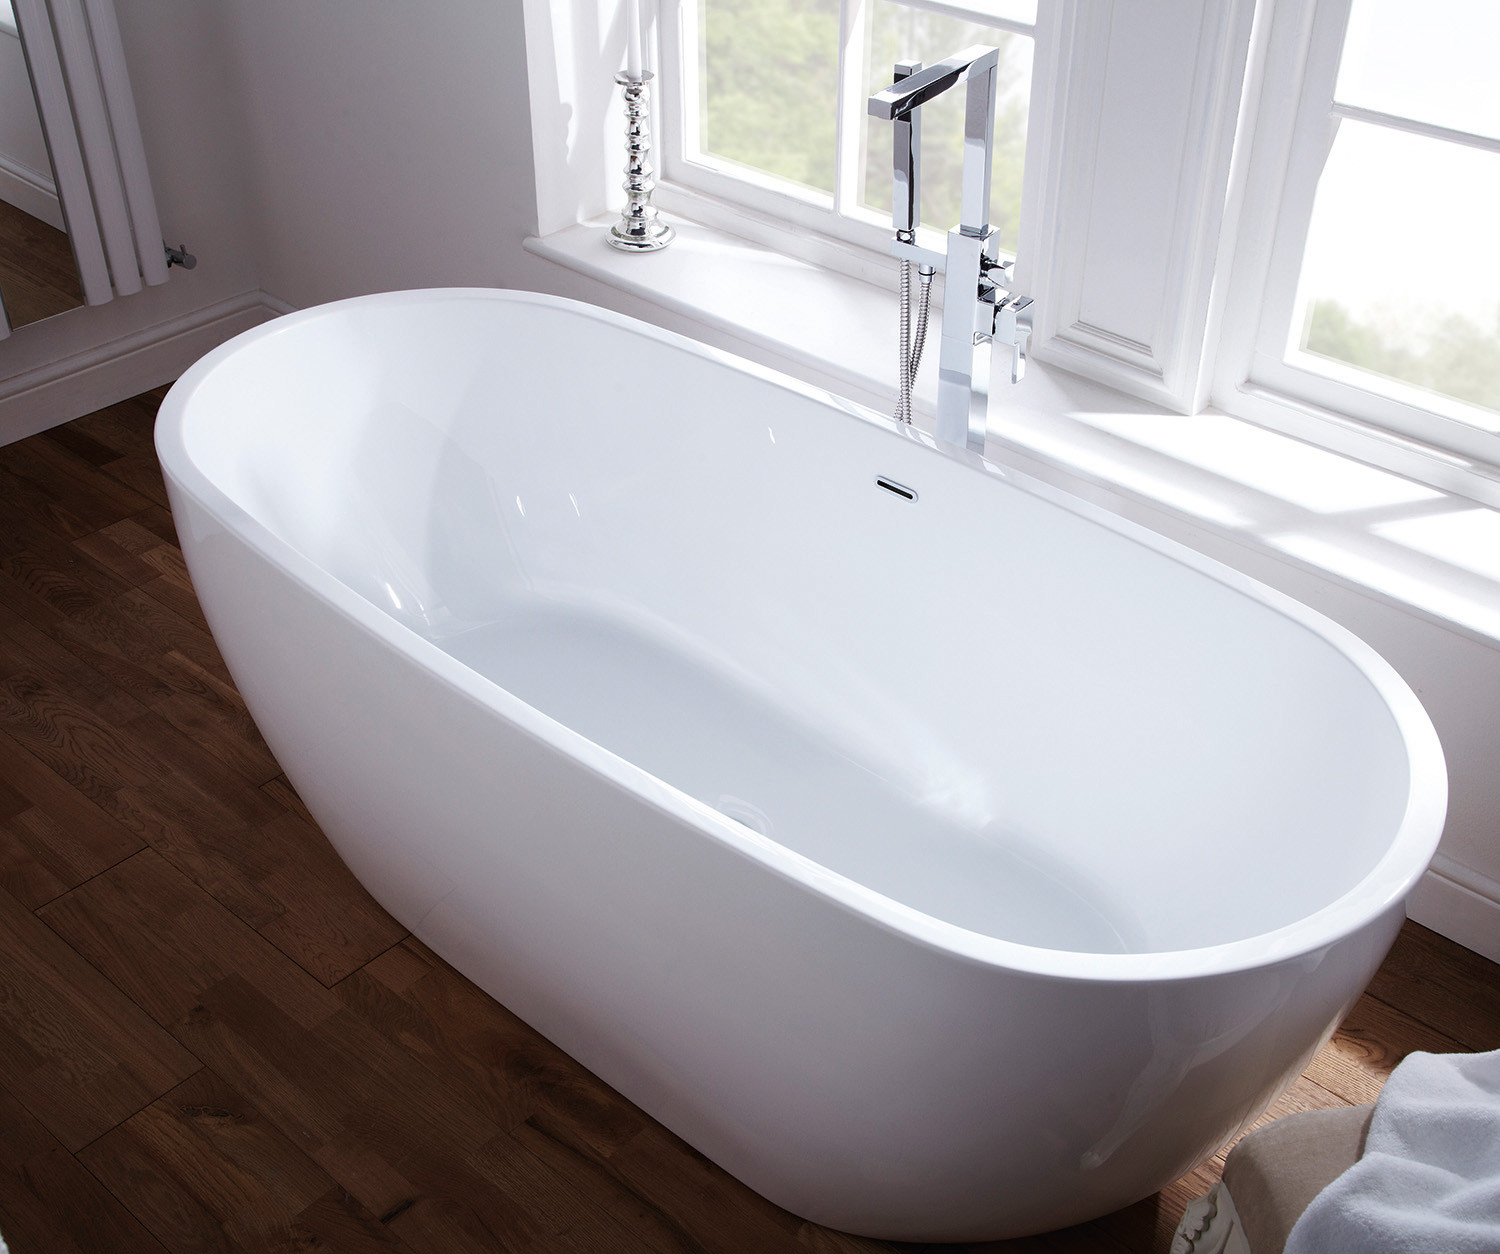 free-standing-taps-and-bath